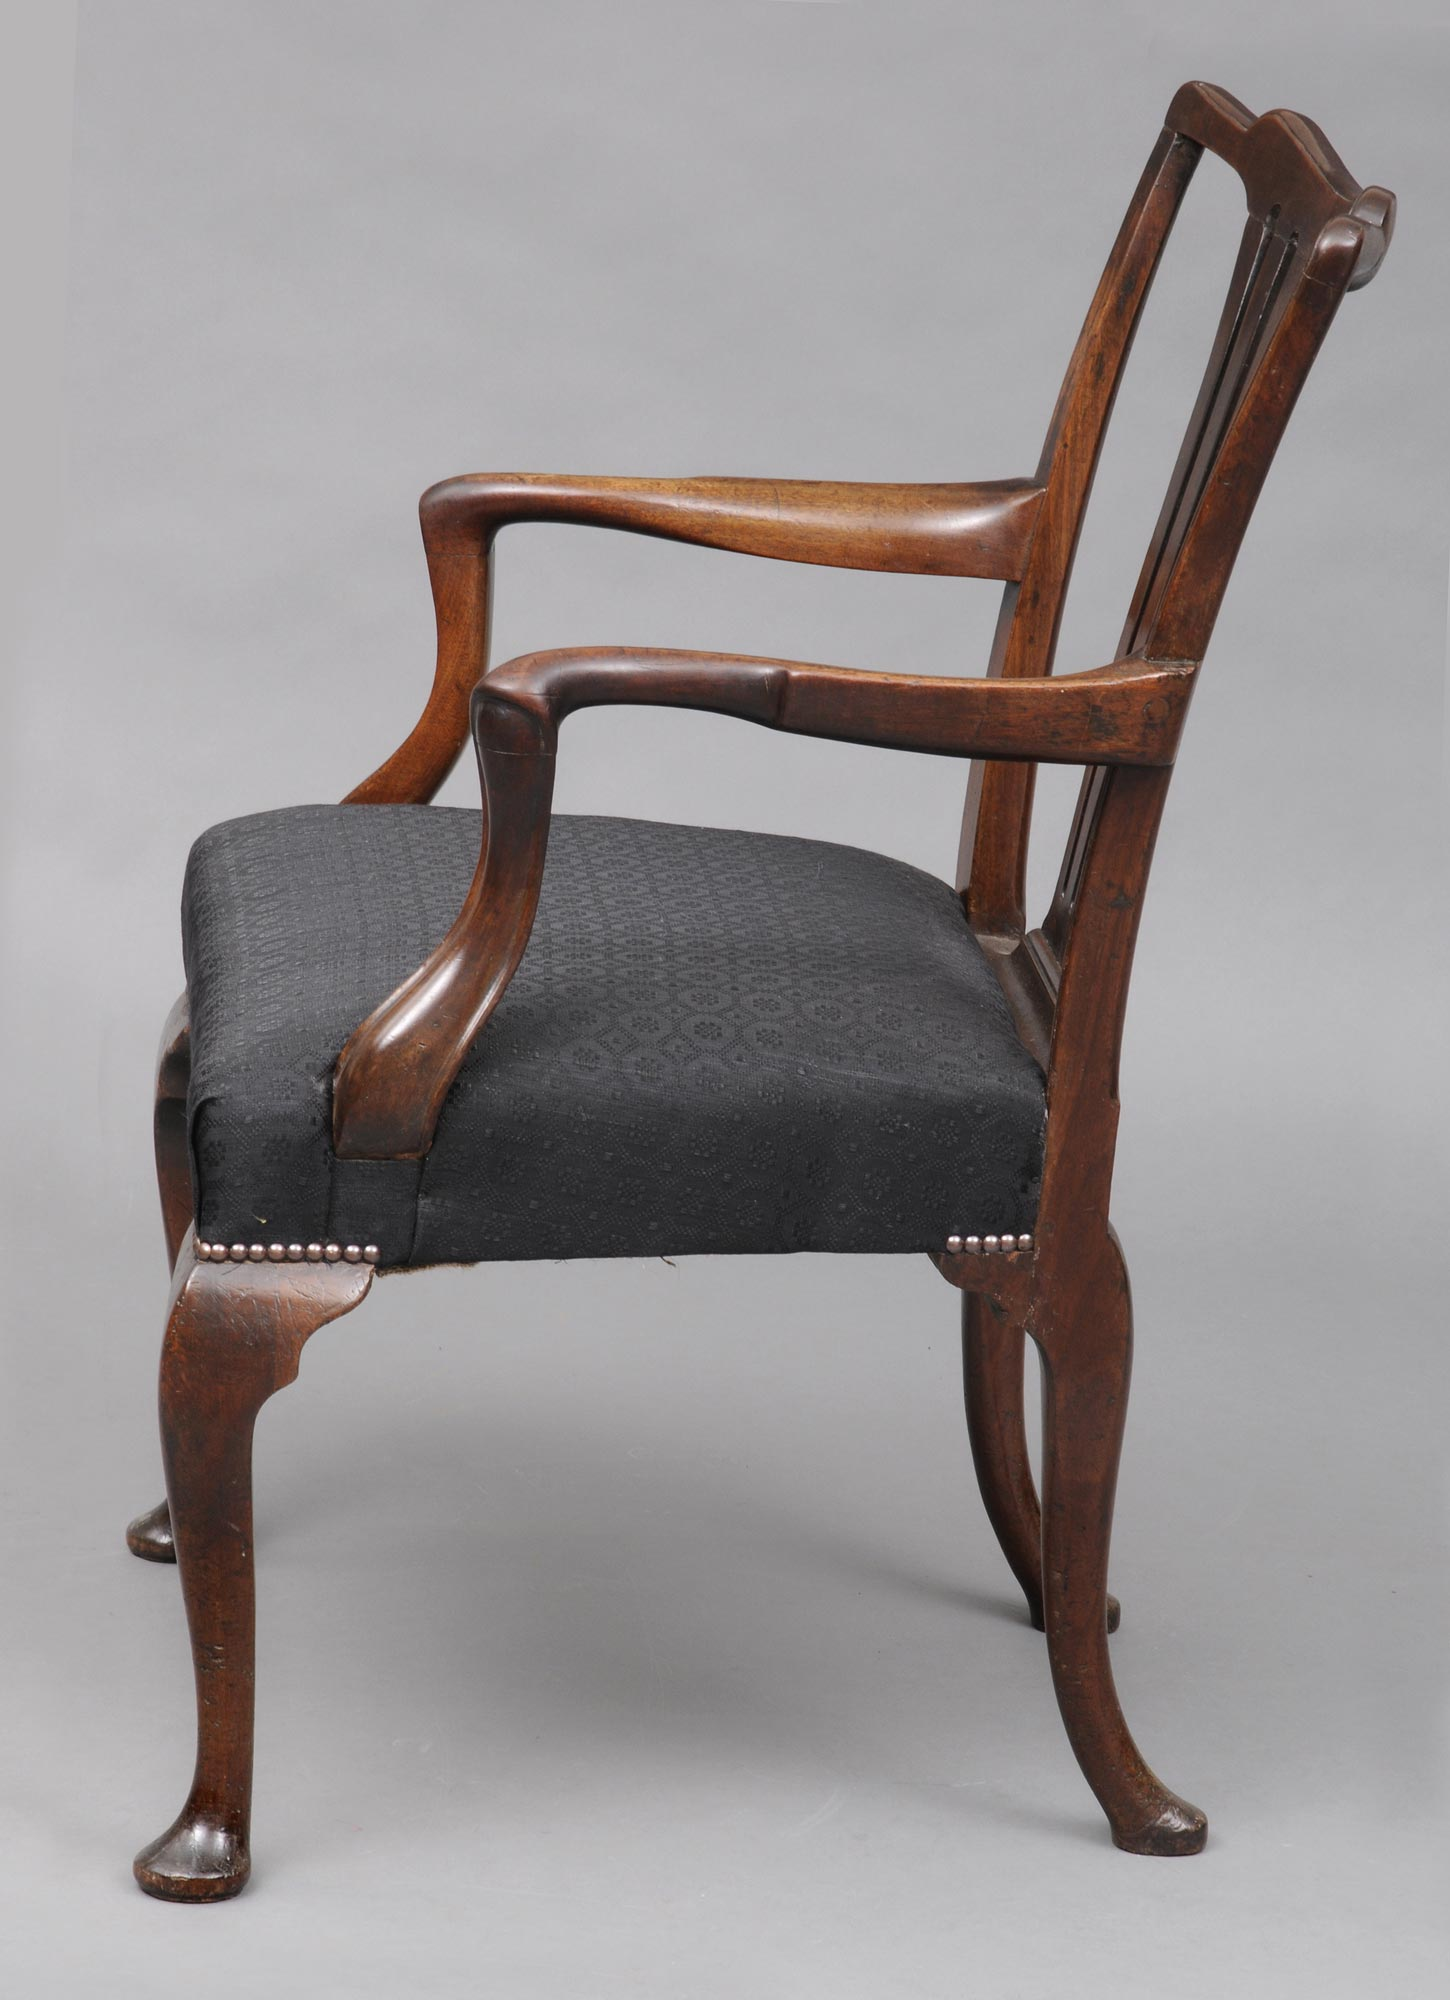 ... English Antique George II Chippendale Armchair 18th Century ... & Antique Mahogany Armchair | English George II Chippendale Armchair